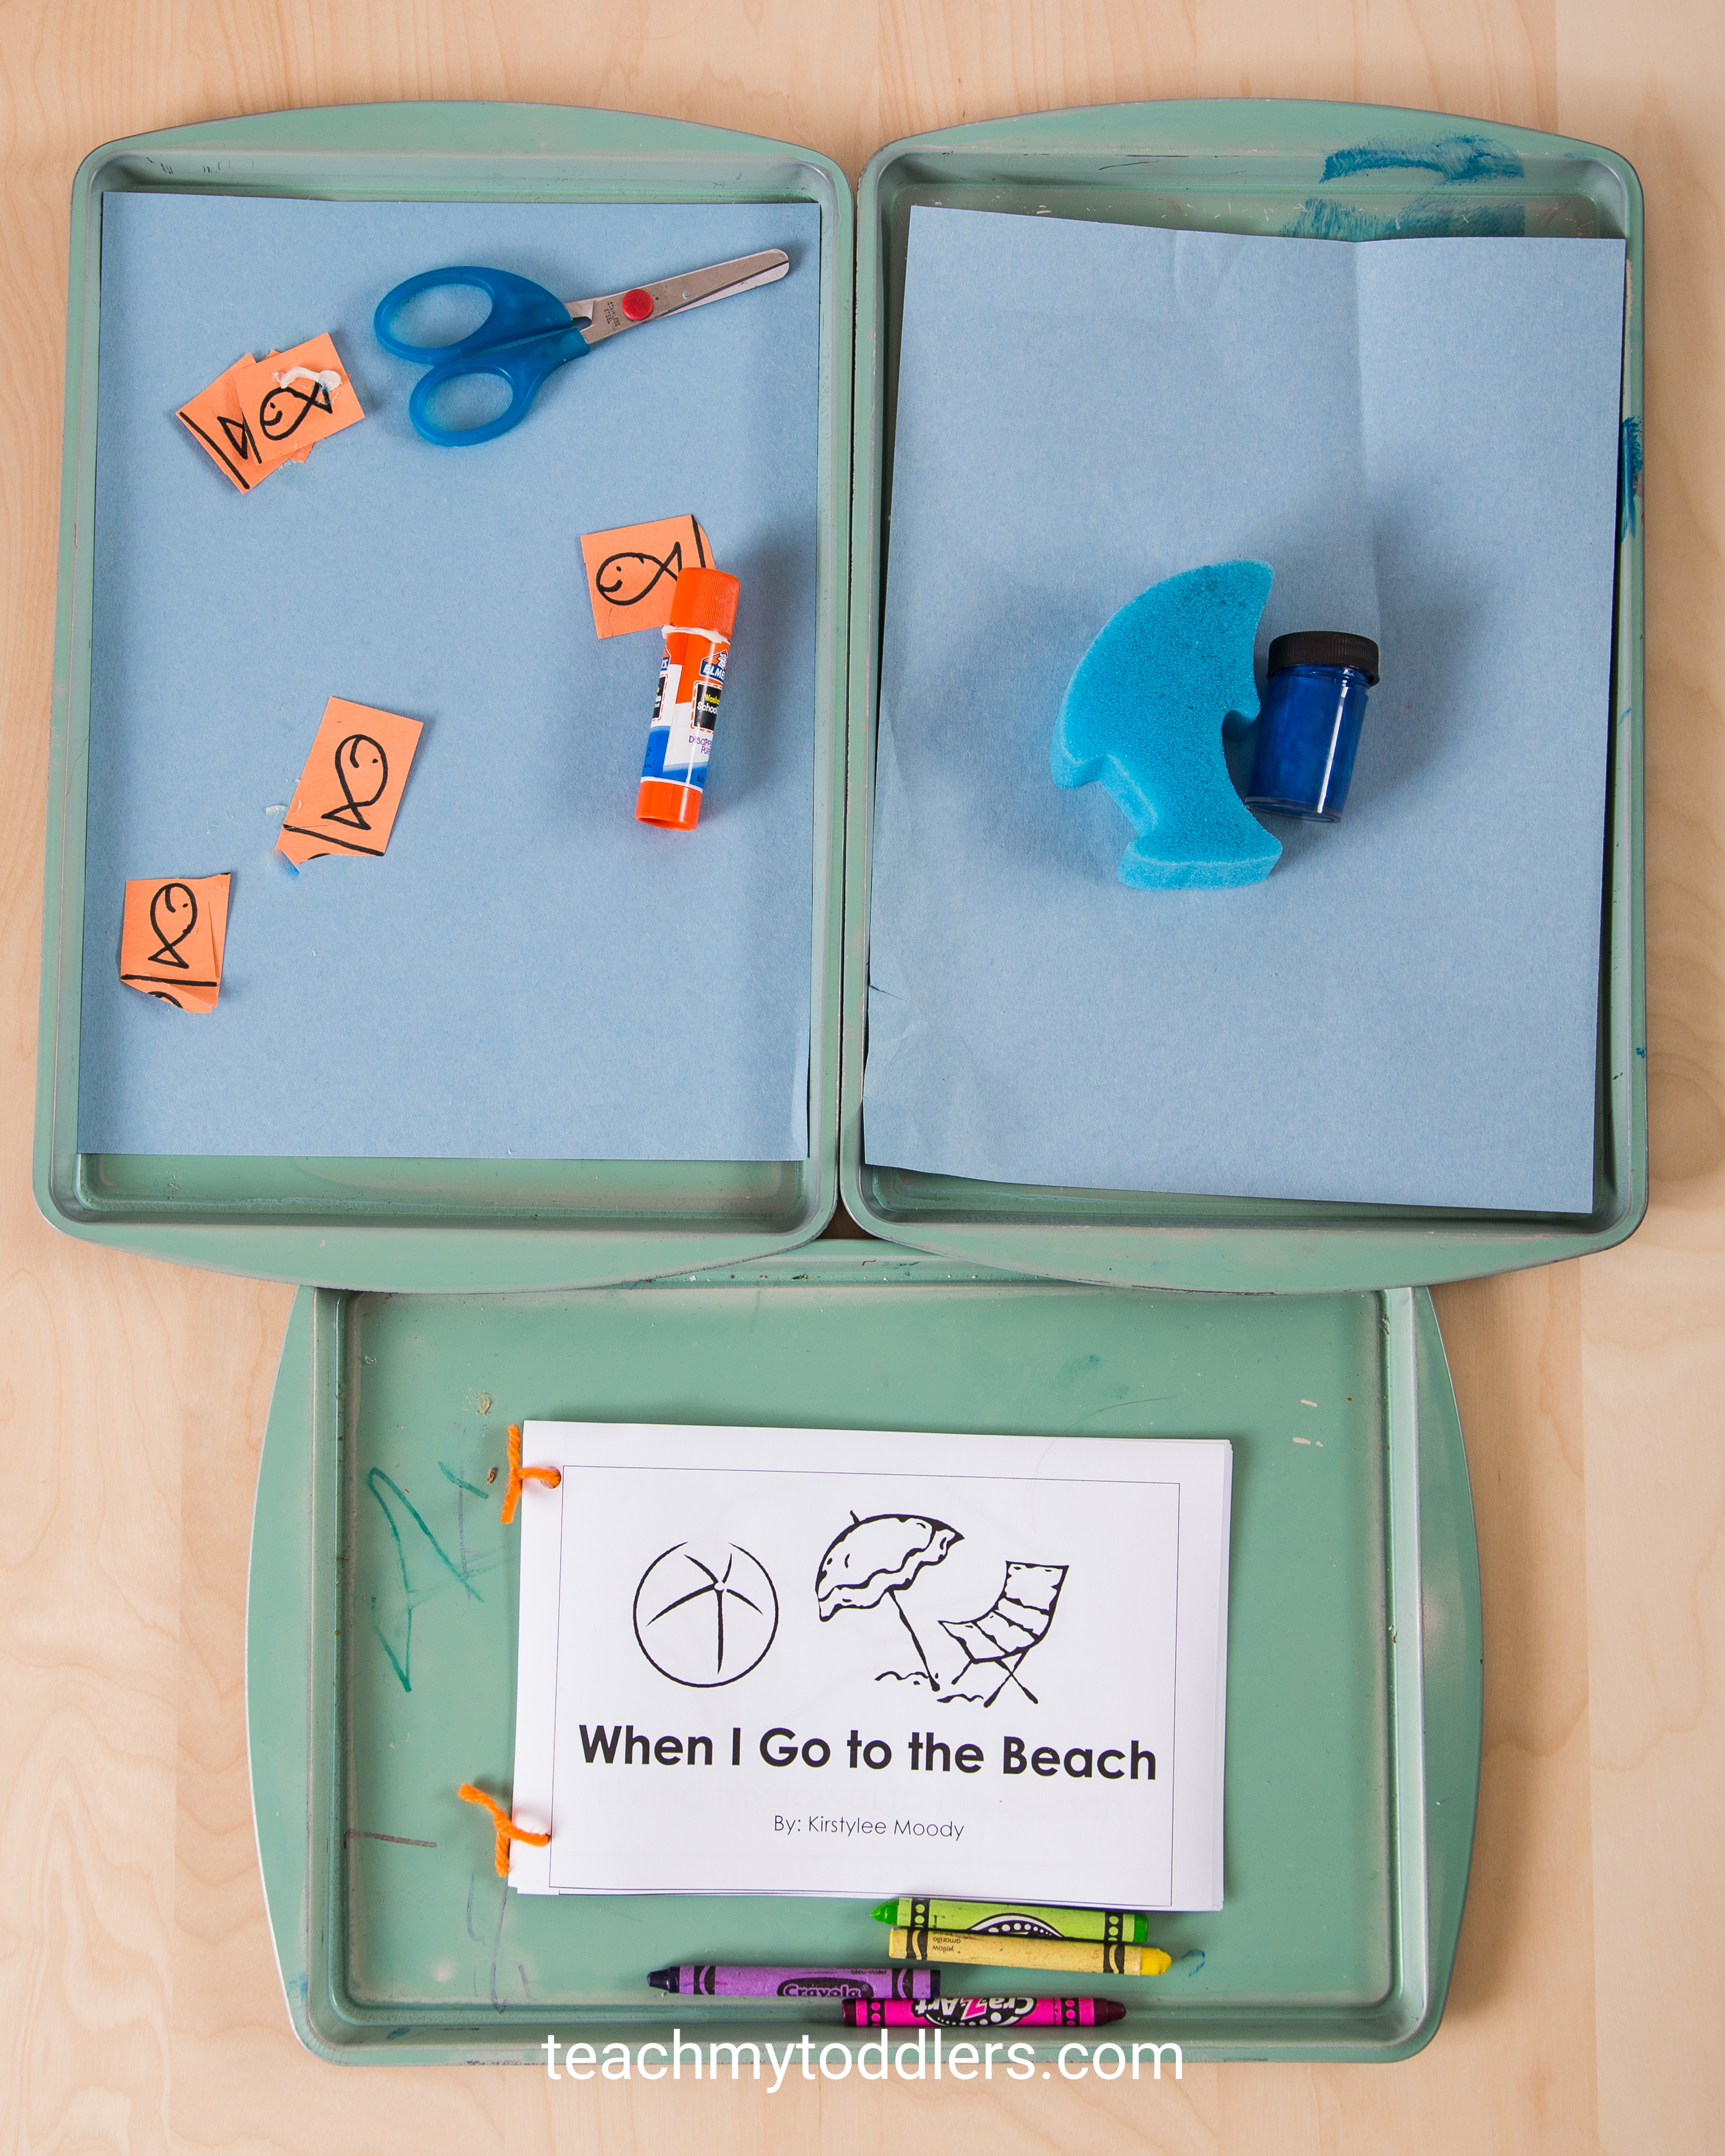 Use these great beach activities to teach your toddlers about the beach